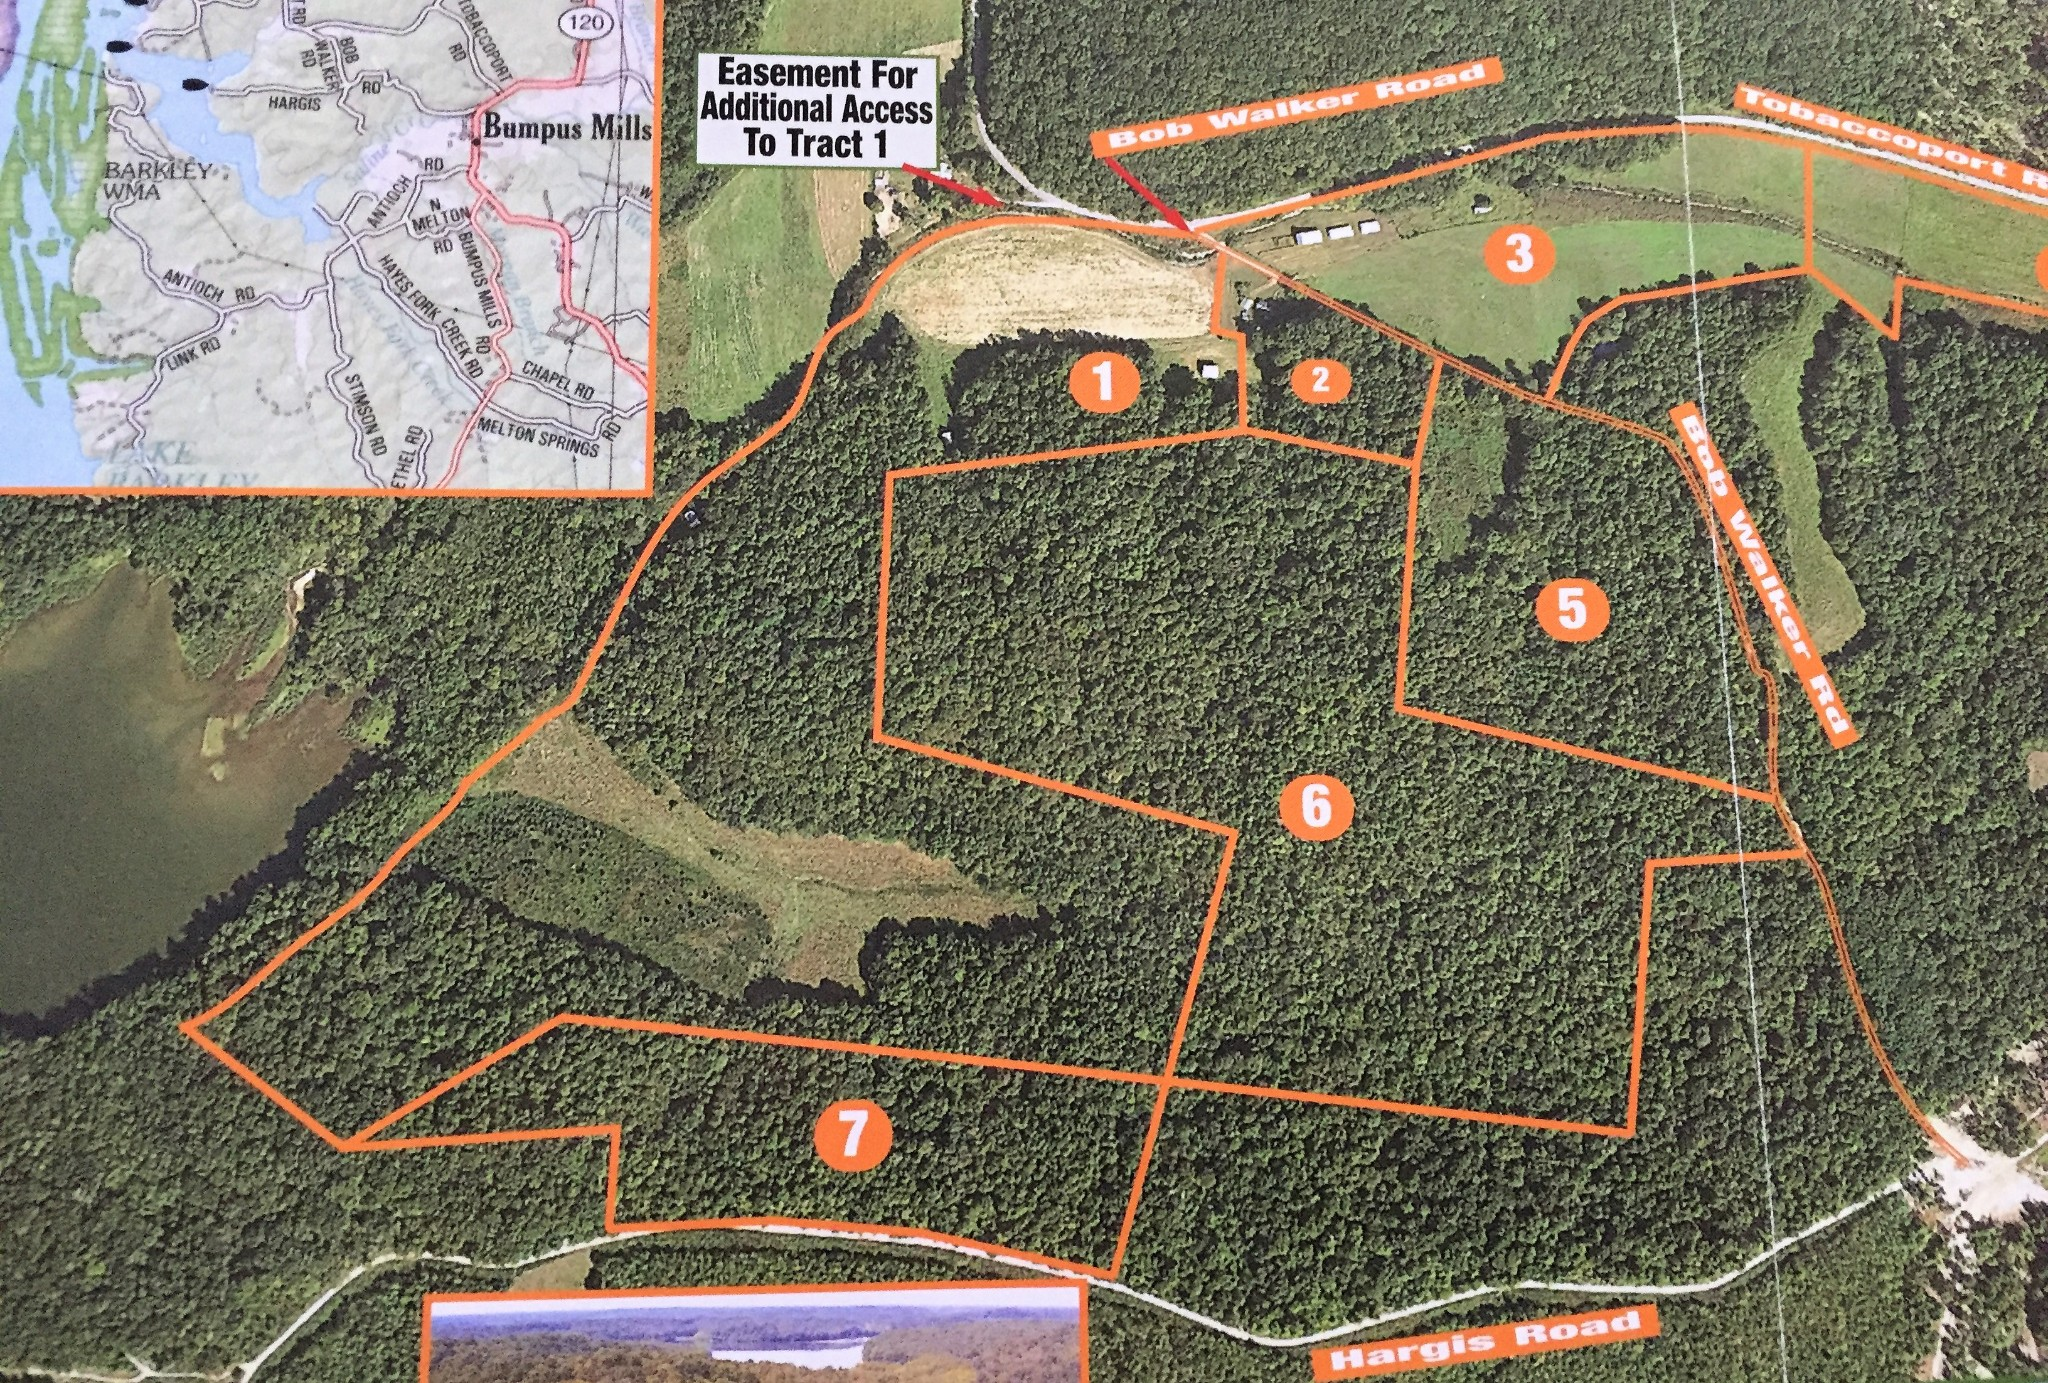 0 Bob Walker Rd -Section 5&6, Bumpus Mills, TN 37028 - Bumpus Mills, TN real estate listing